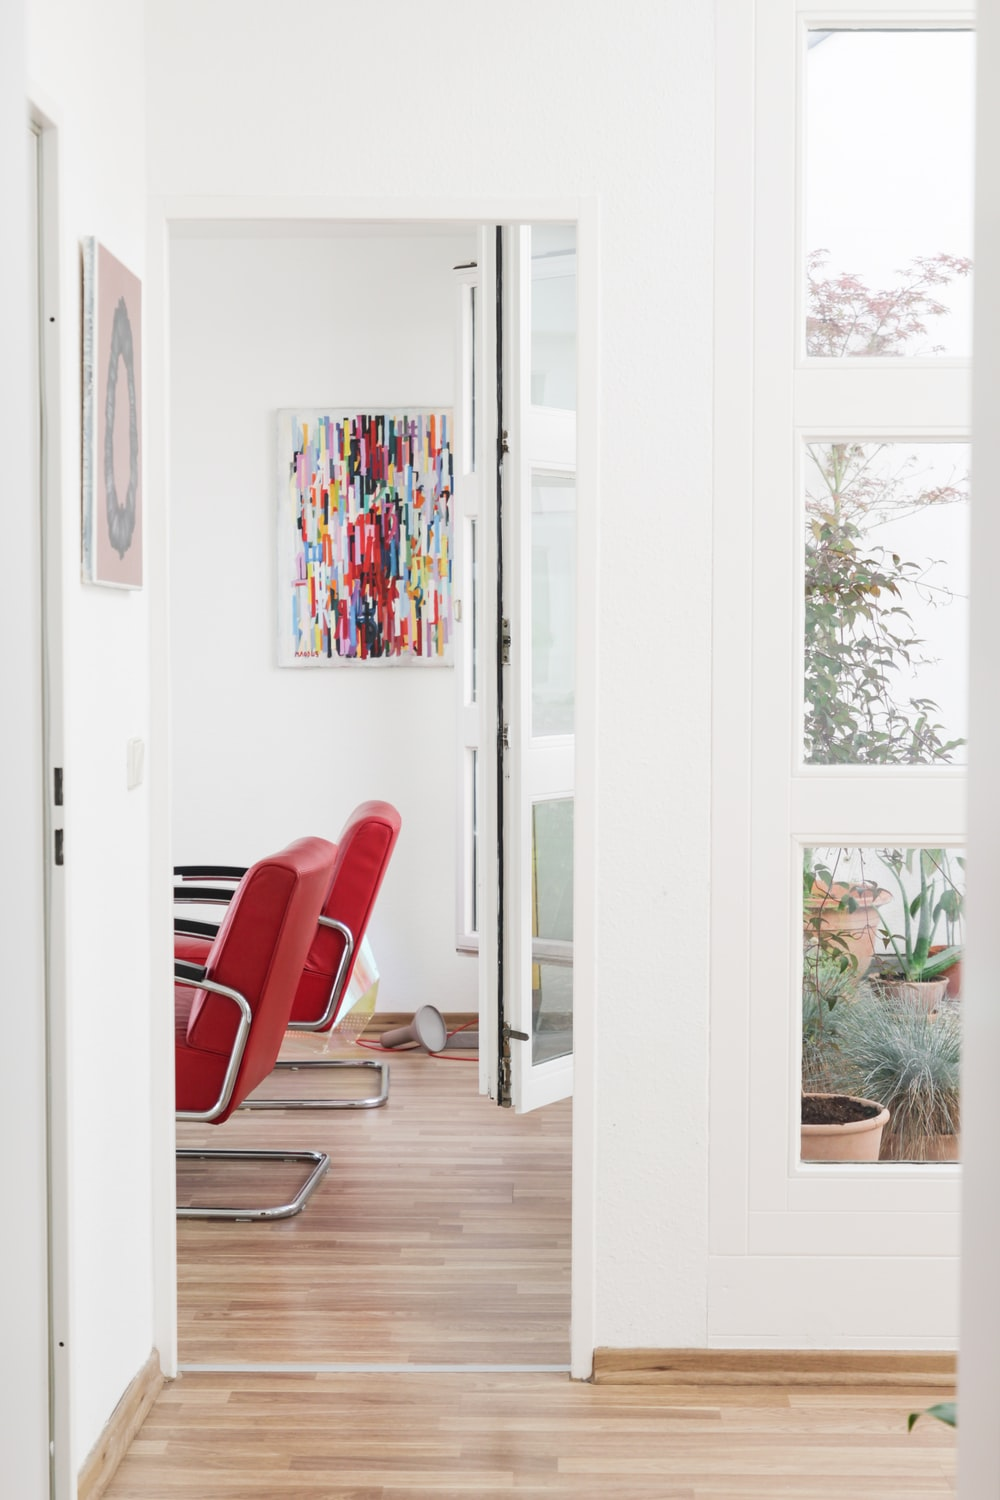 red and black armchair beside white wooden framed glass door